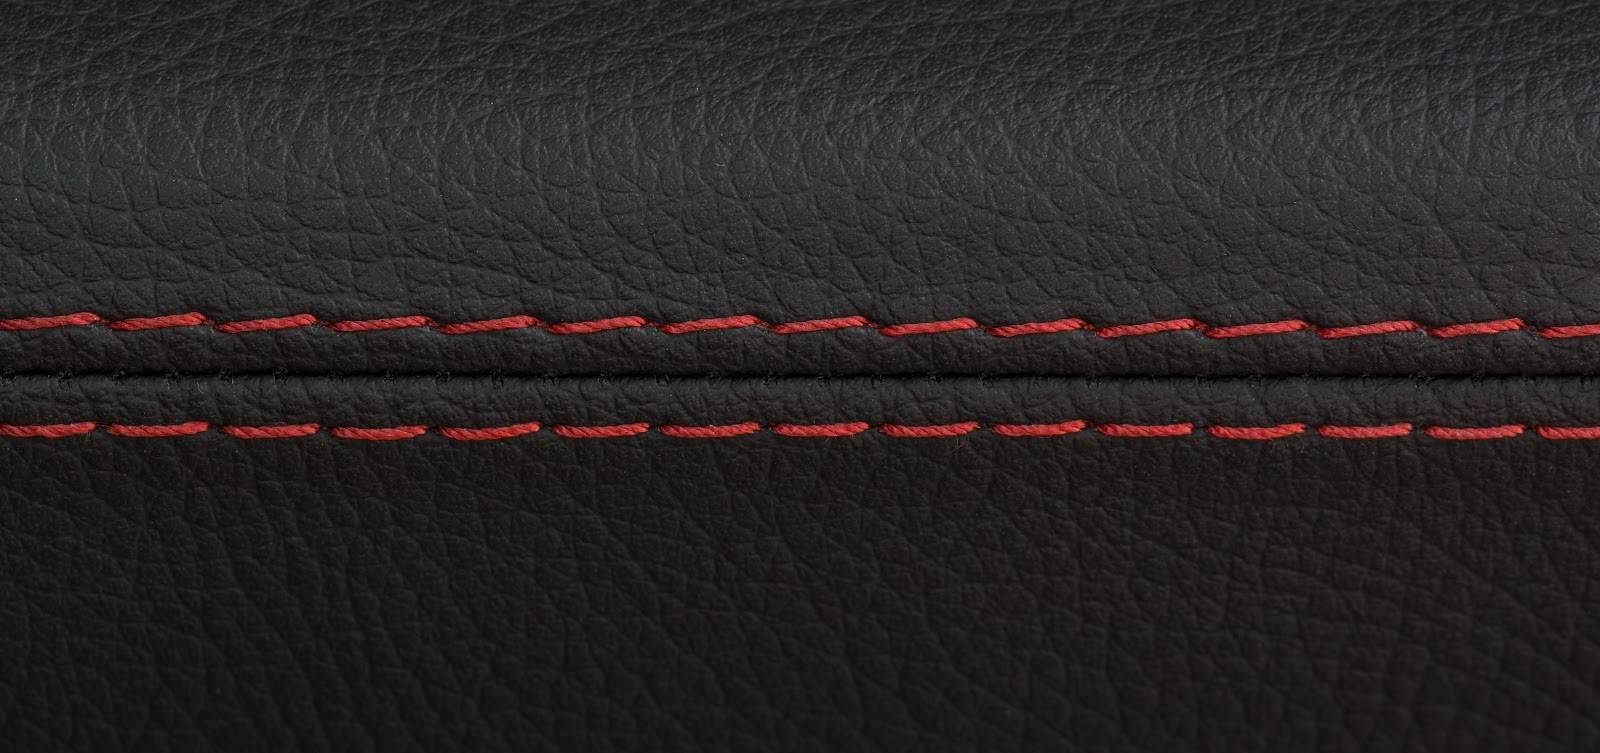 : A black leather car seat with a red seam